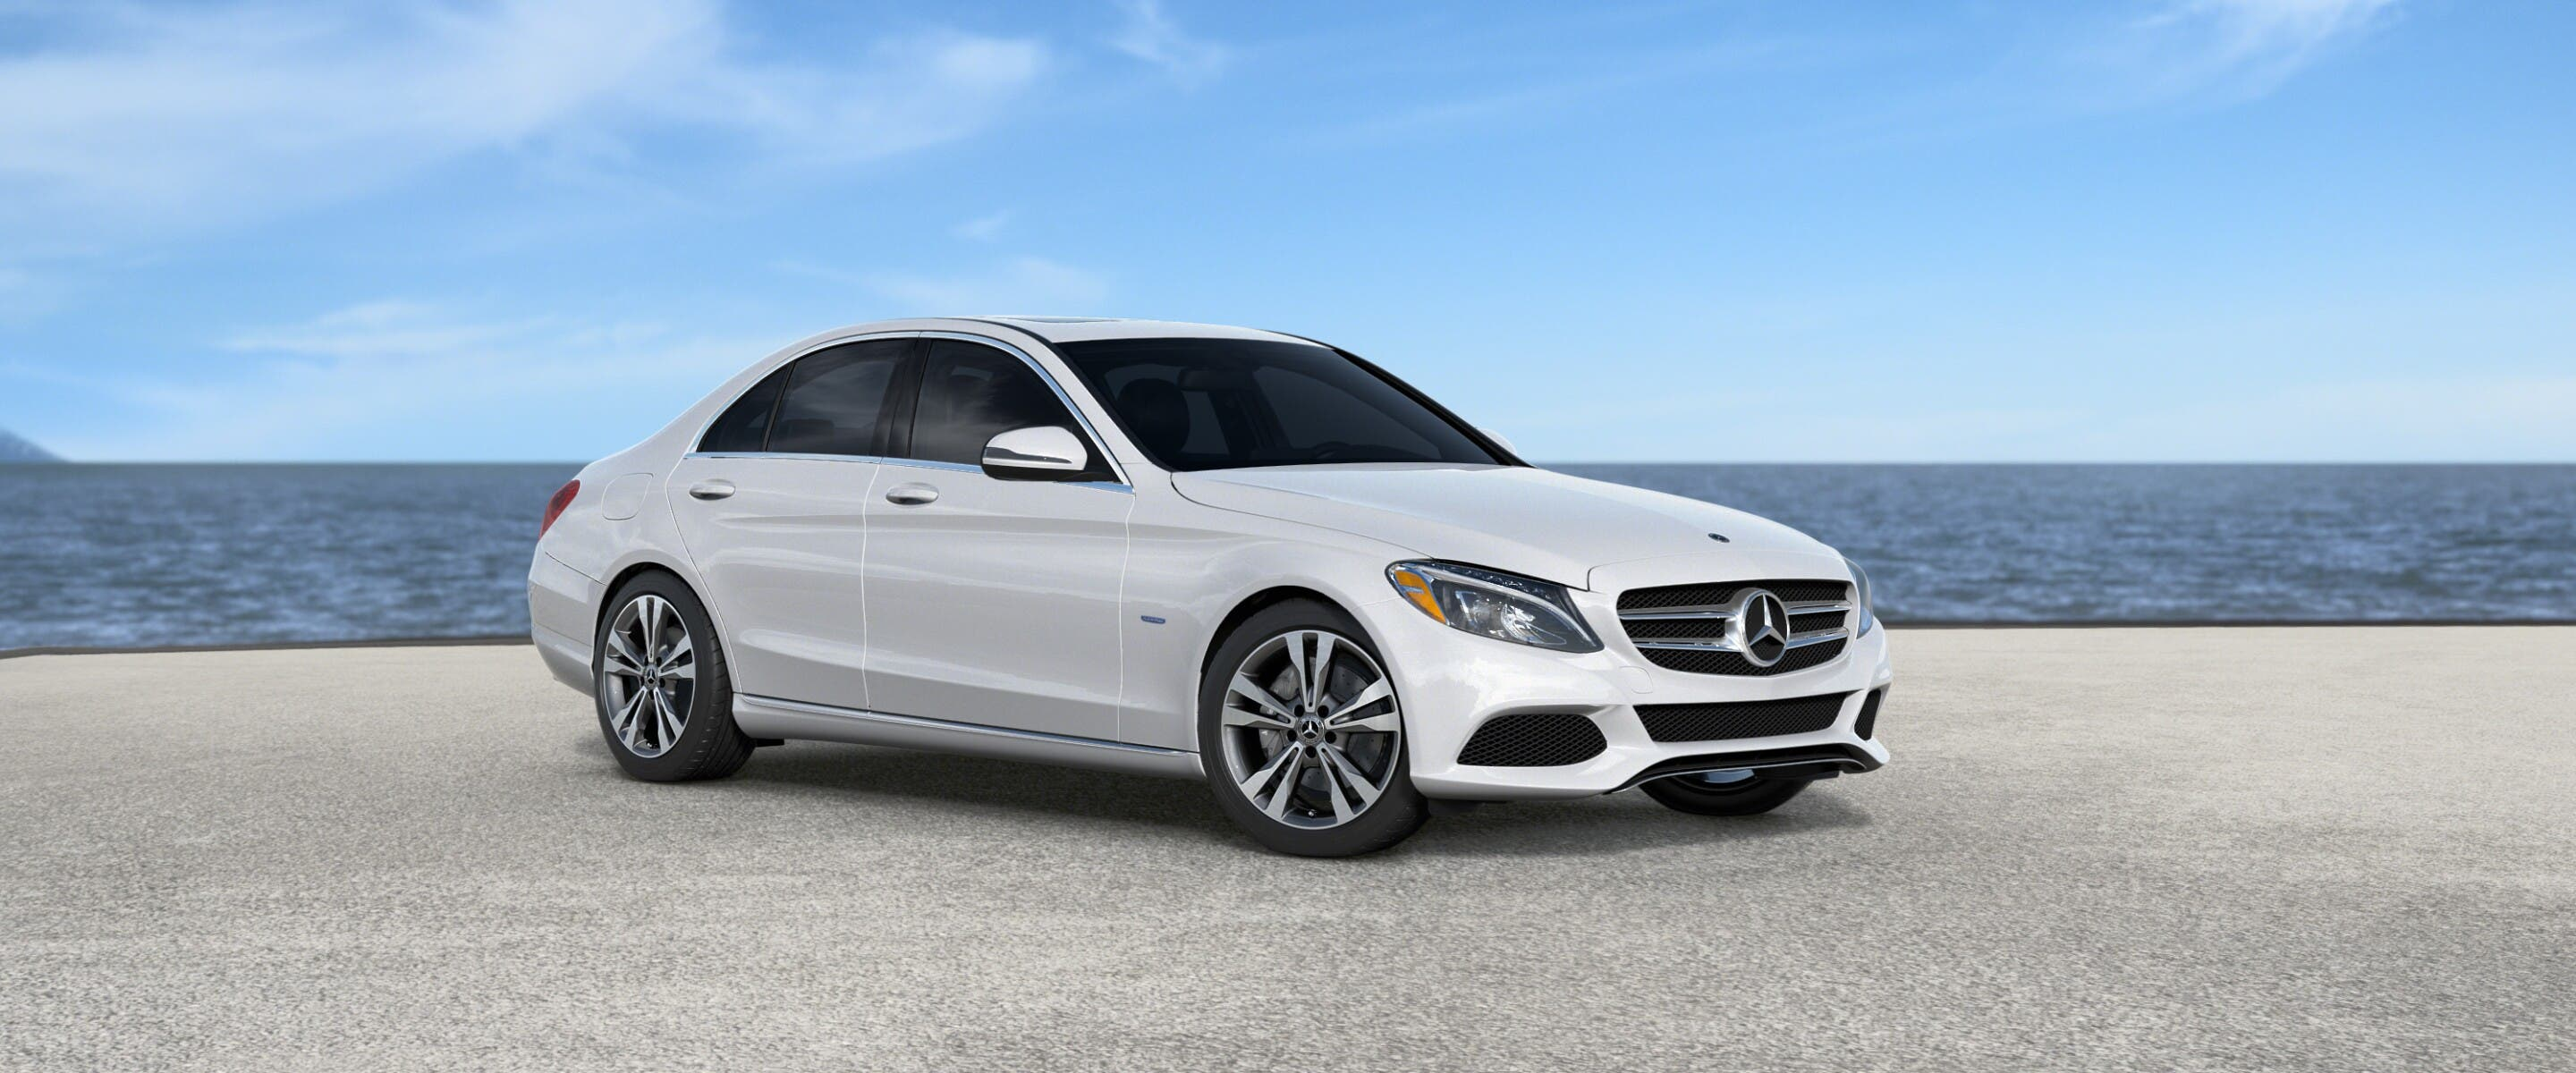 The 2018 Mercedes Benz C350e Phev Features A Real World All Electric Range Of Just 9 Miles Per Full Charge 51 Mpge Combined Gas Energy Fuel Efficiency